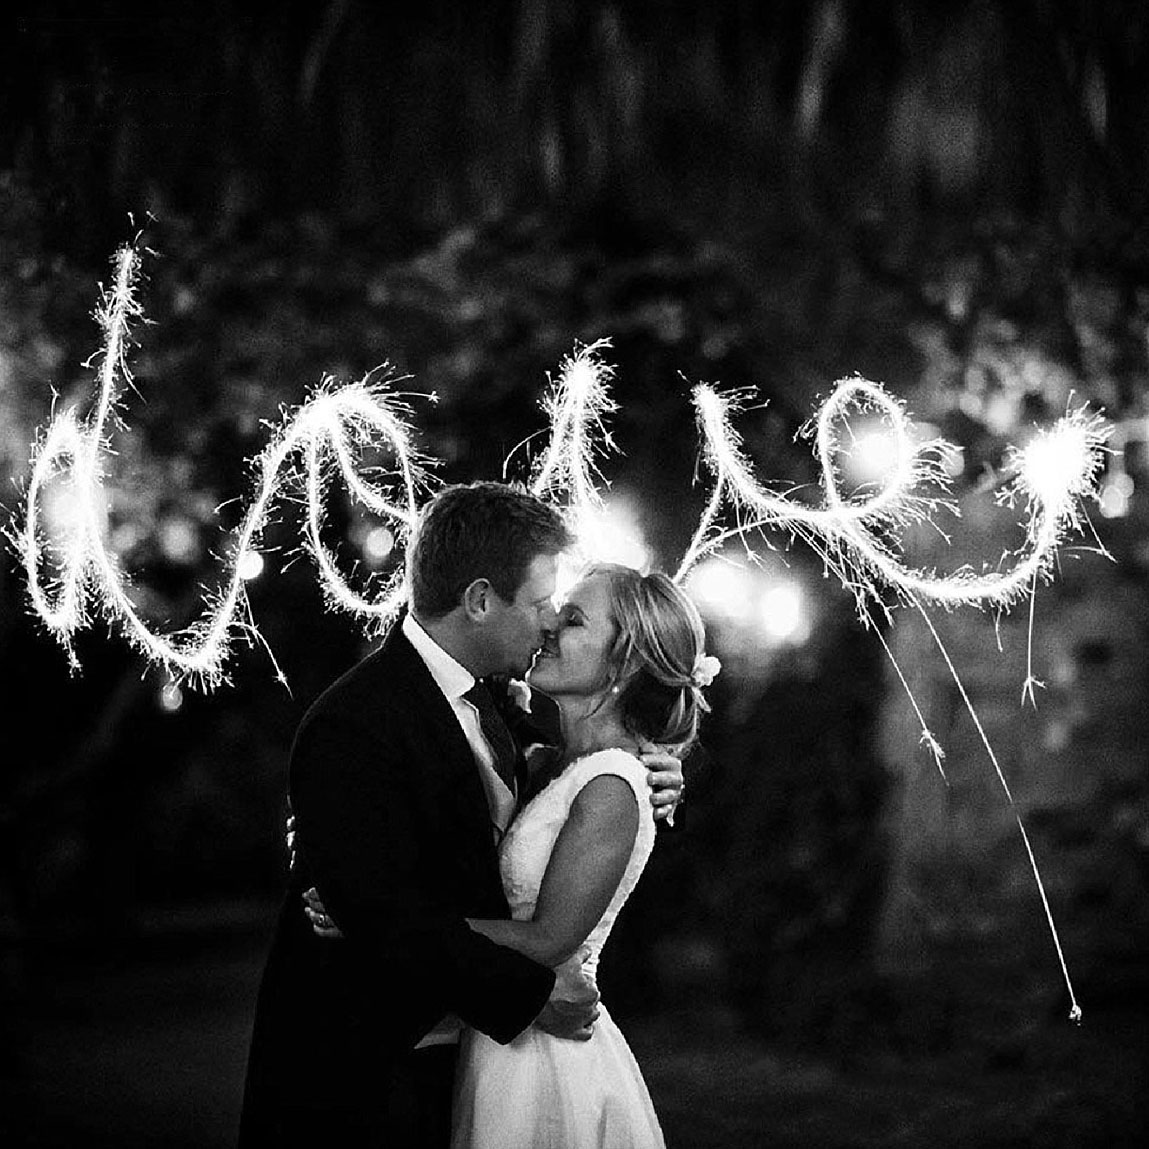 rossington hall wedding photography.jpg